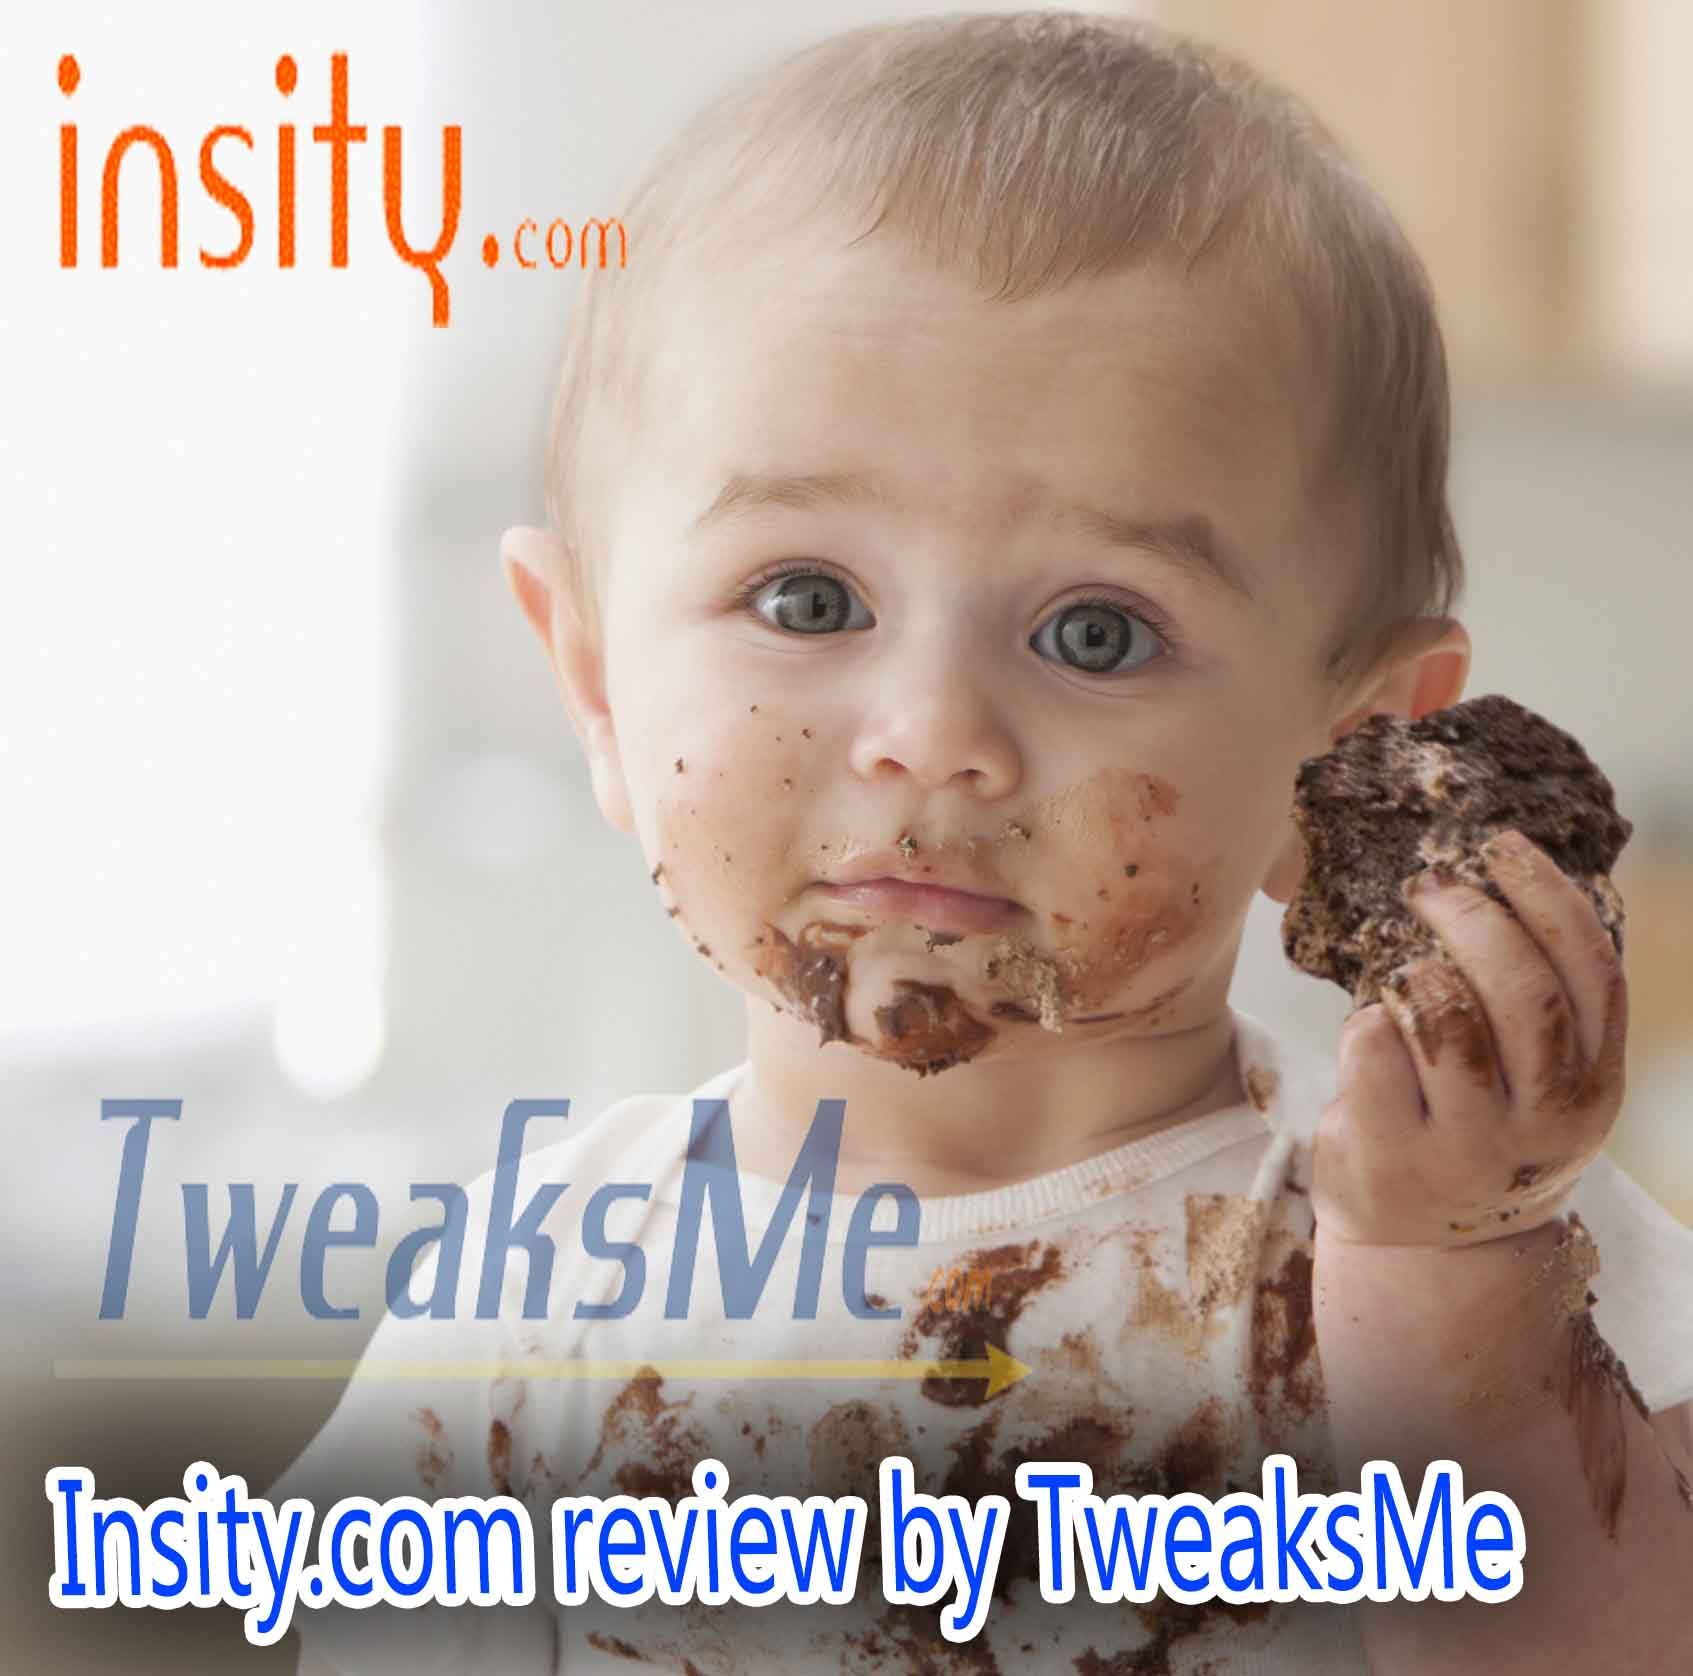 Insity.com Review – The Choclates & Gifts Megastore